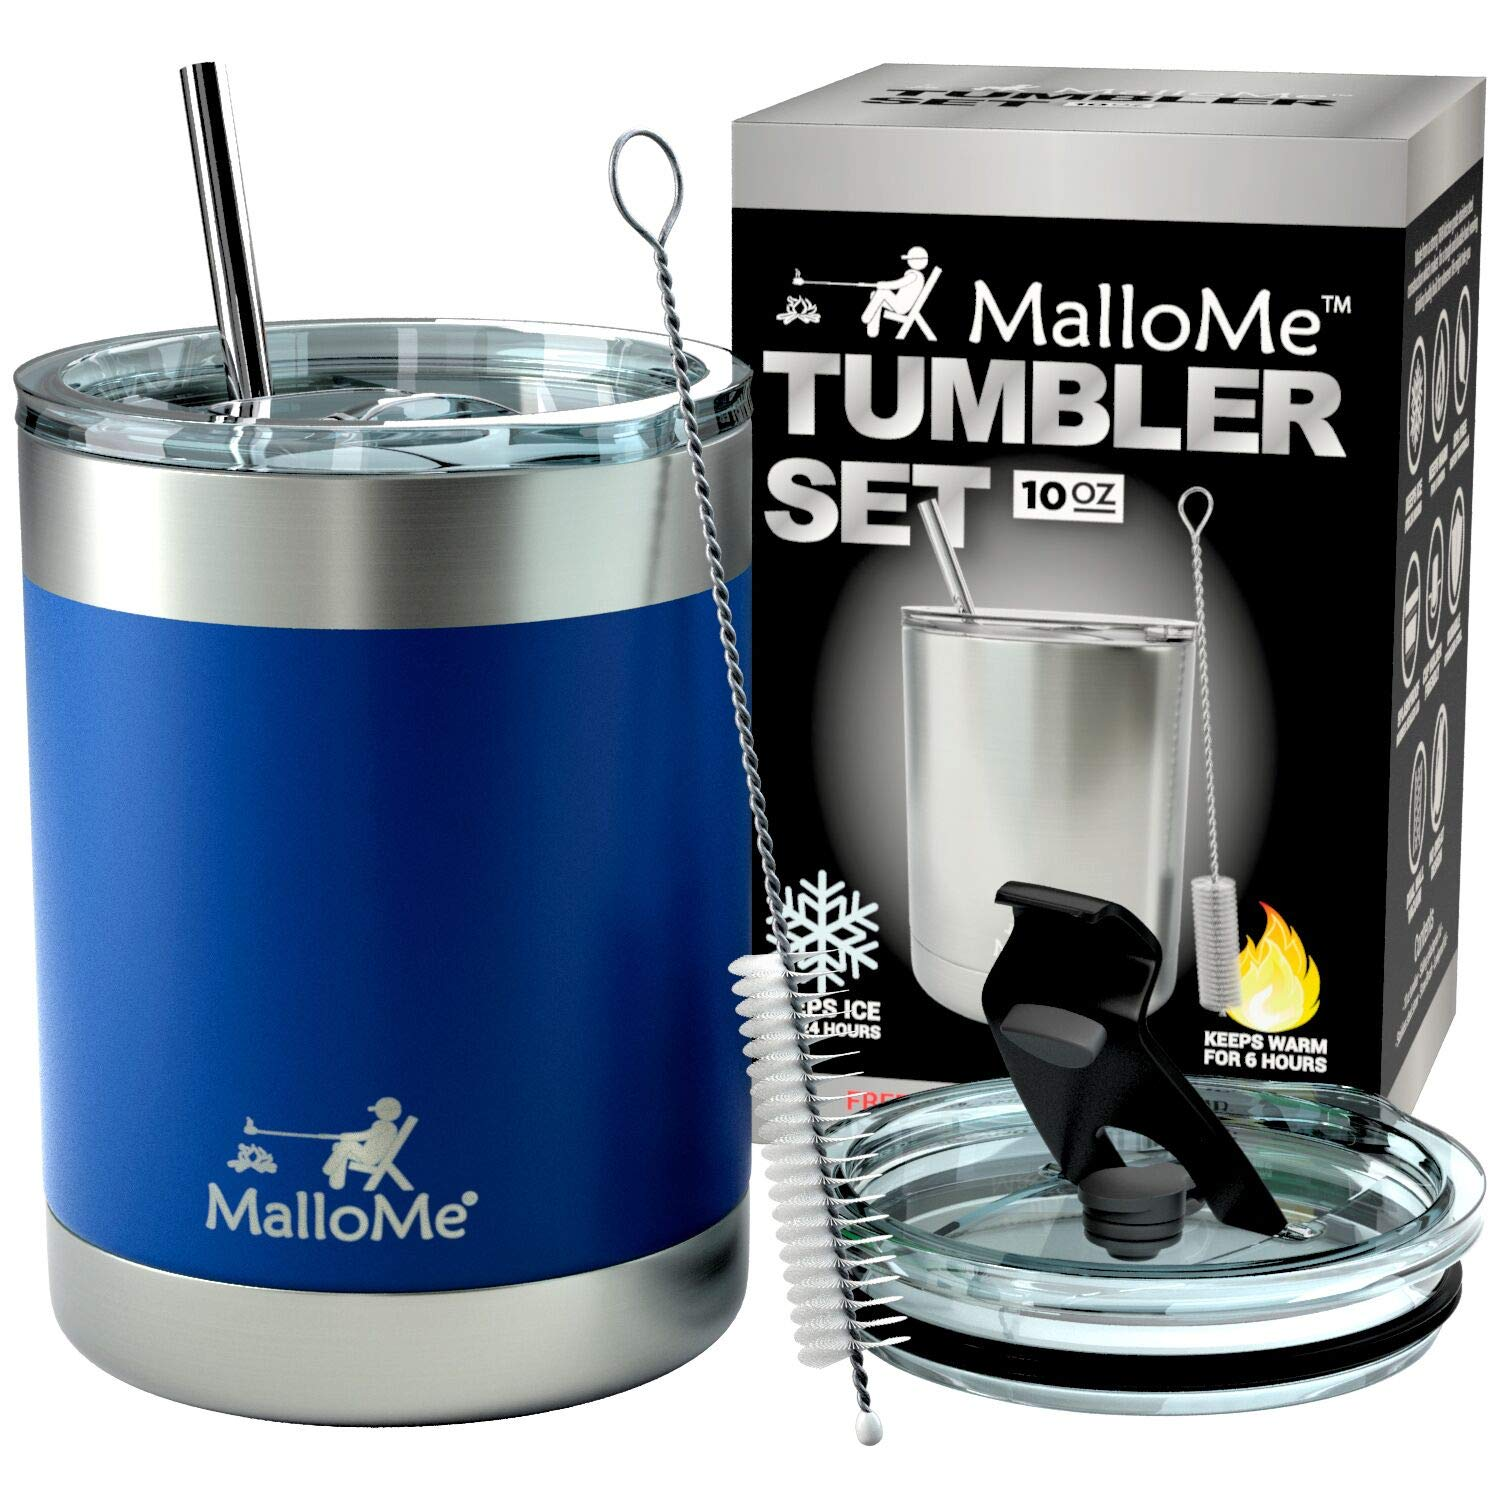 MalloMe Stainless Steel Vacuum Insulated 5-Piece Tumbler Set, Royal Blue 10 oz